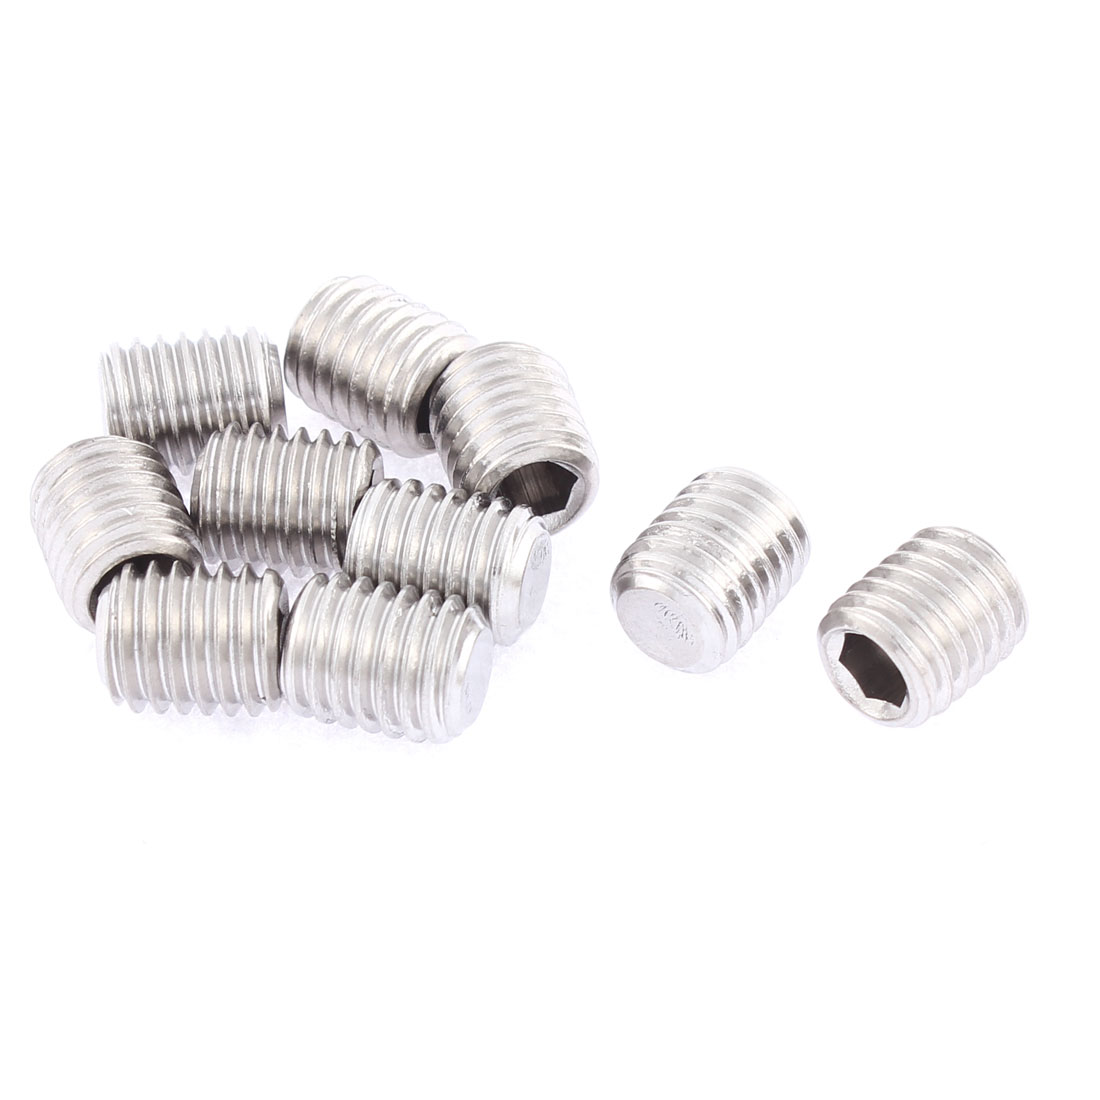 M10x12mm 1.5mm Pitch Stainless Steel Hex Socket Set Flat Point Grub Screws 10pcs